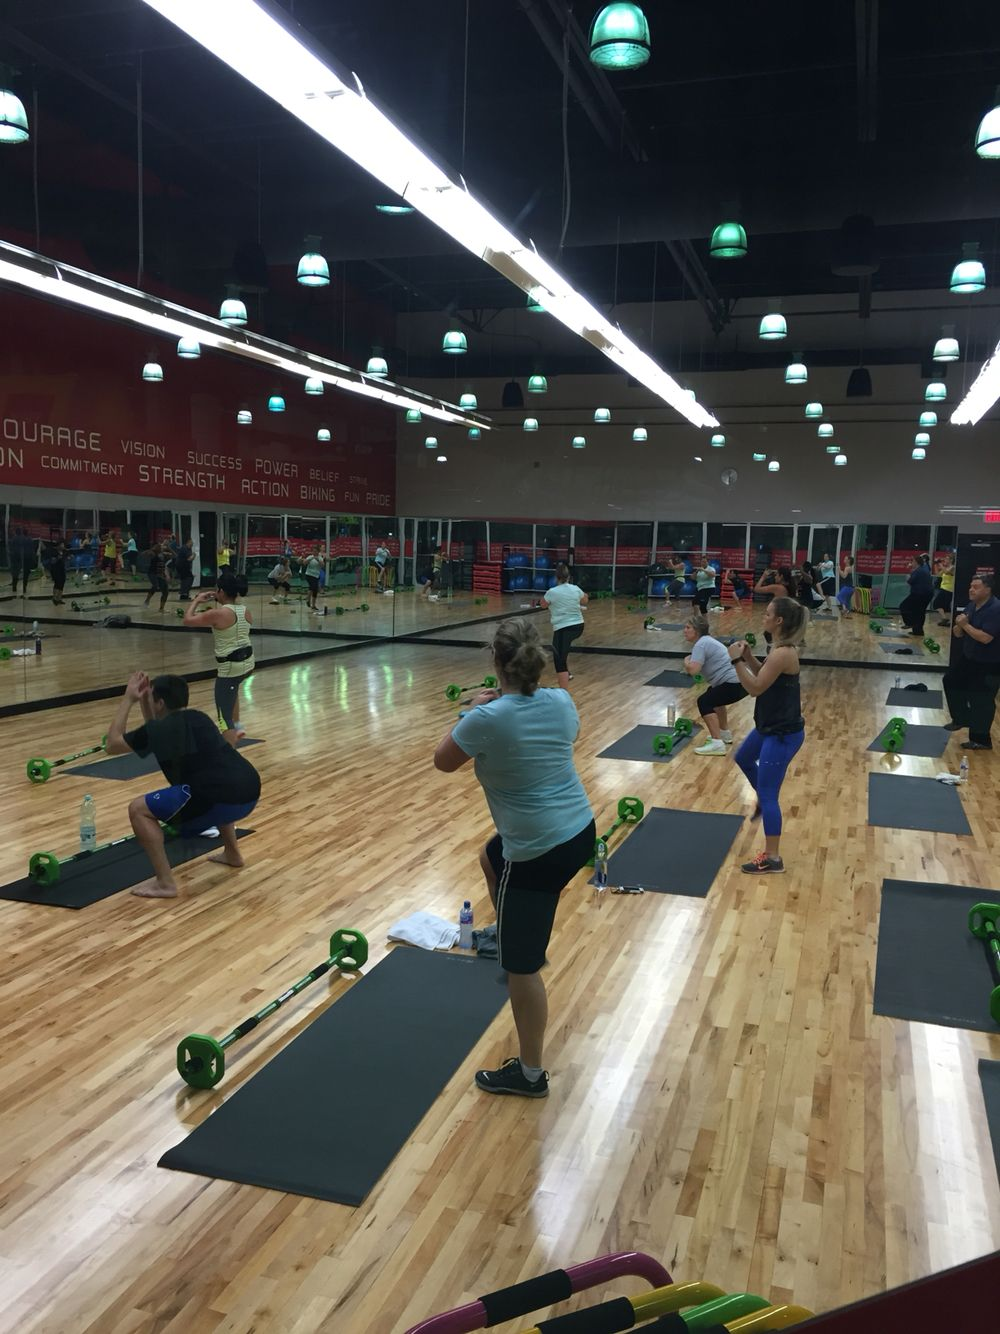 Great New Class First Srt Barbell Class In The Usa Only At Signature Fitness Club Naperville Il Come Join Our Class Fitness Club New Class Naperville Il